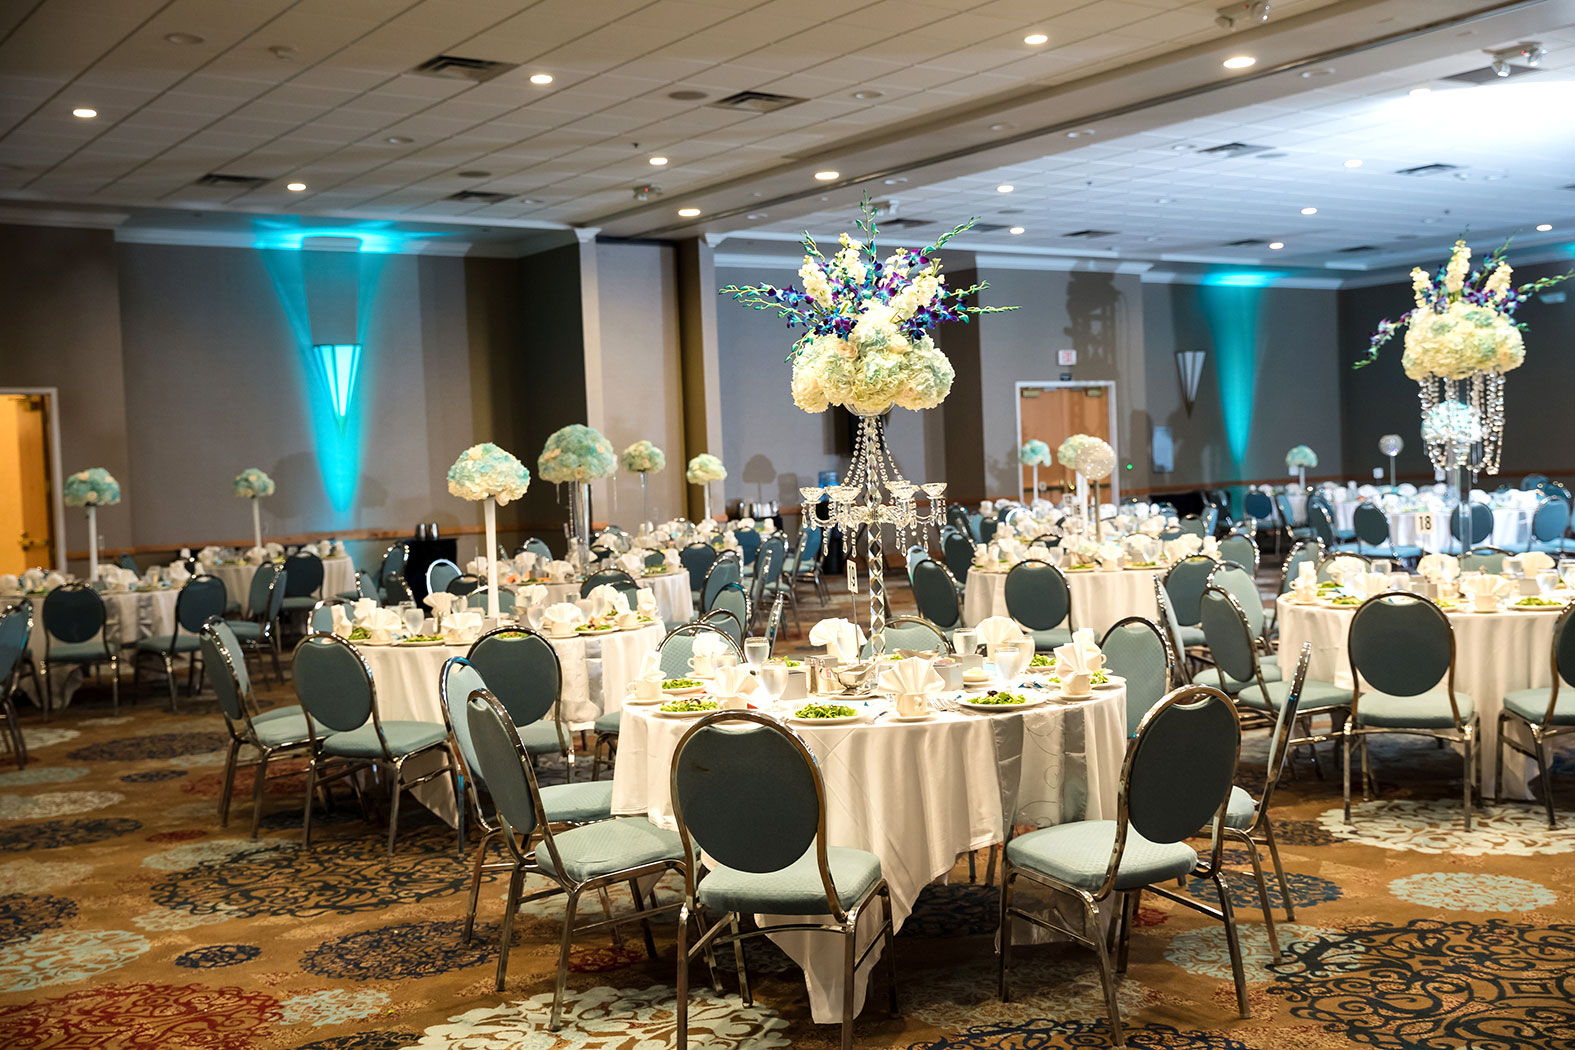 wedding reception setup with decorated tables and chairs